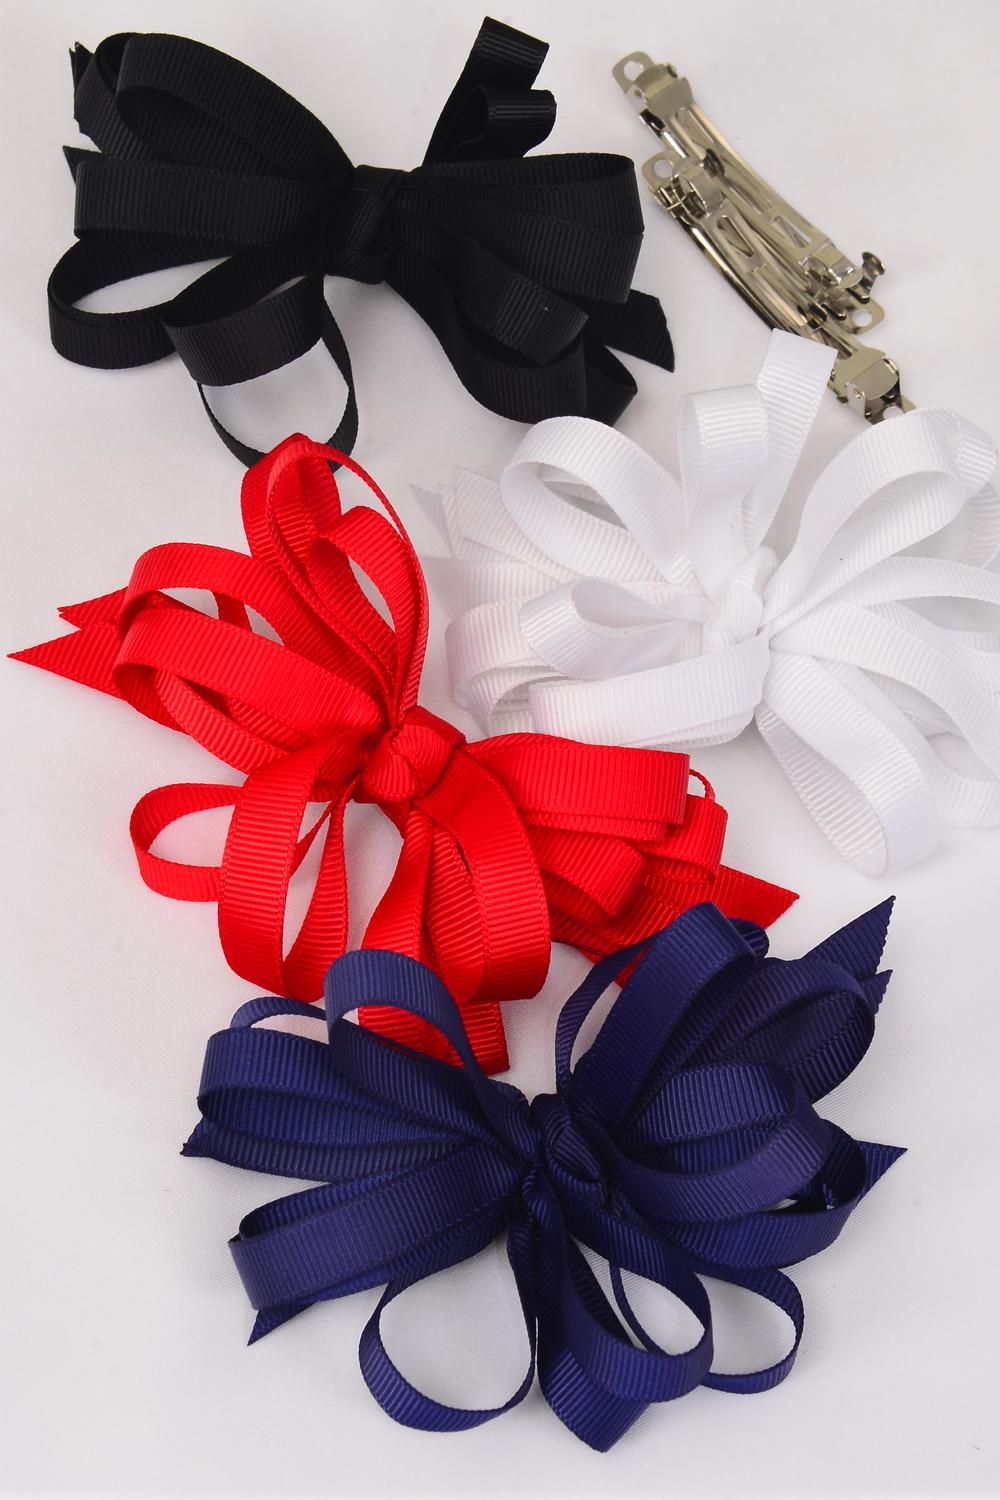 "Hair Bow Loop Bow Red White Black Navy Mix Grosgrain Fabric French Clip/DZ **French Clip** Bow Size-4.5""x 3.5"" Wide,3 Red,3 White,3 Black,3 Navy Mix,Display Card & UPC Code,W Clear Box"